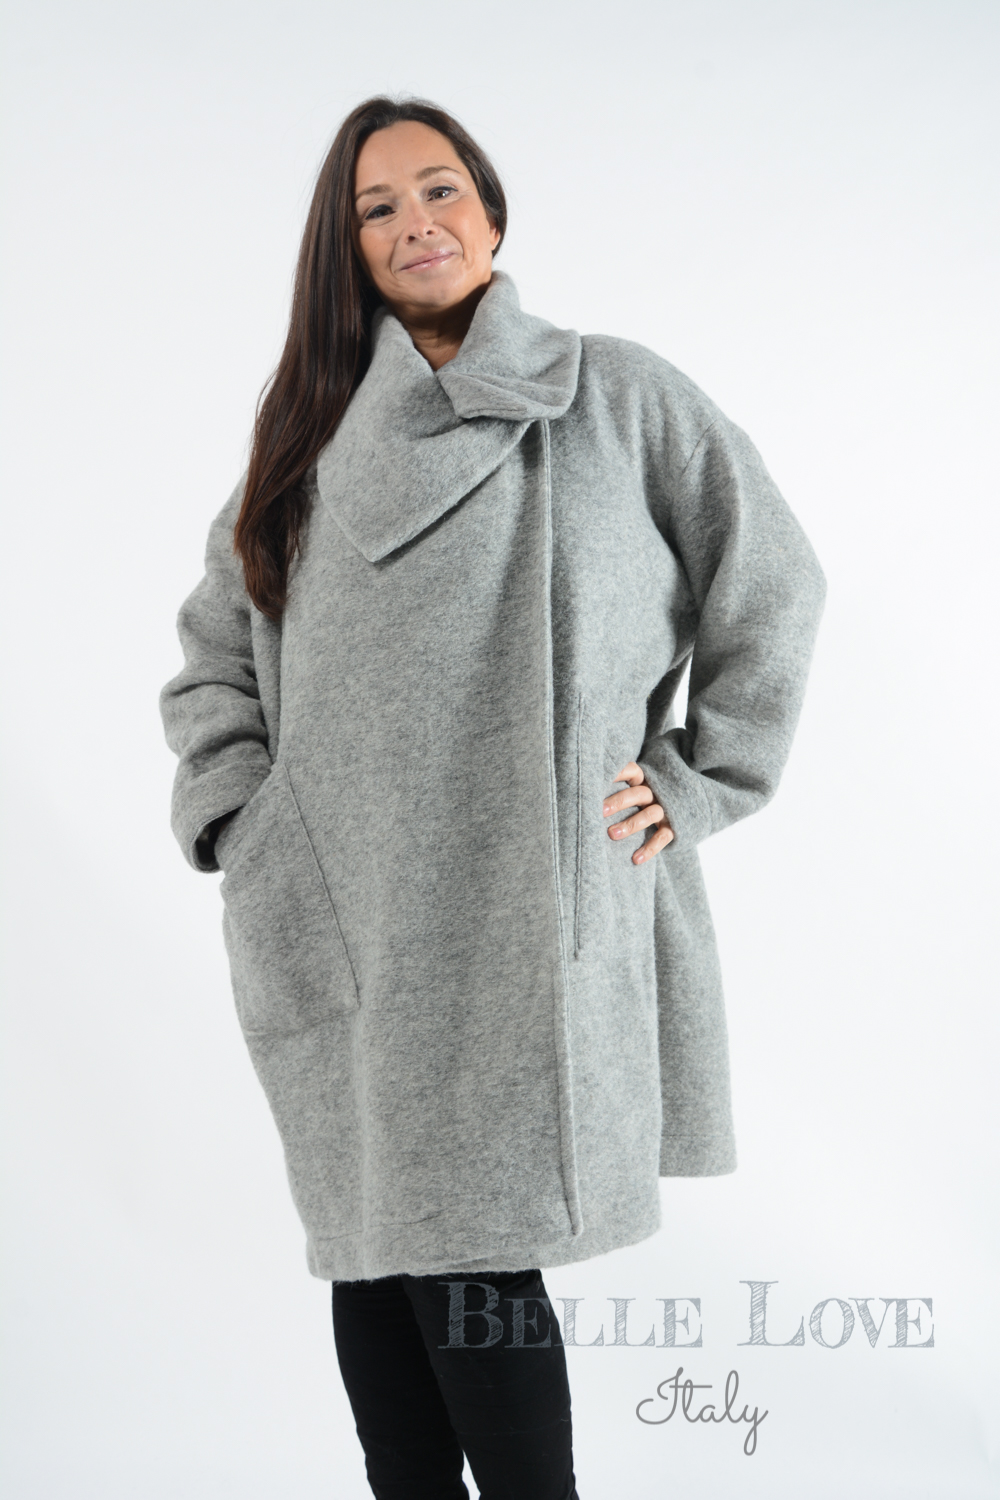 Belle Love Italy Vinci Wool Coat